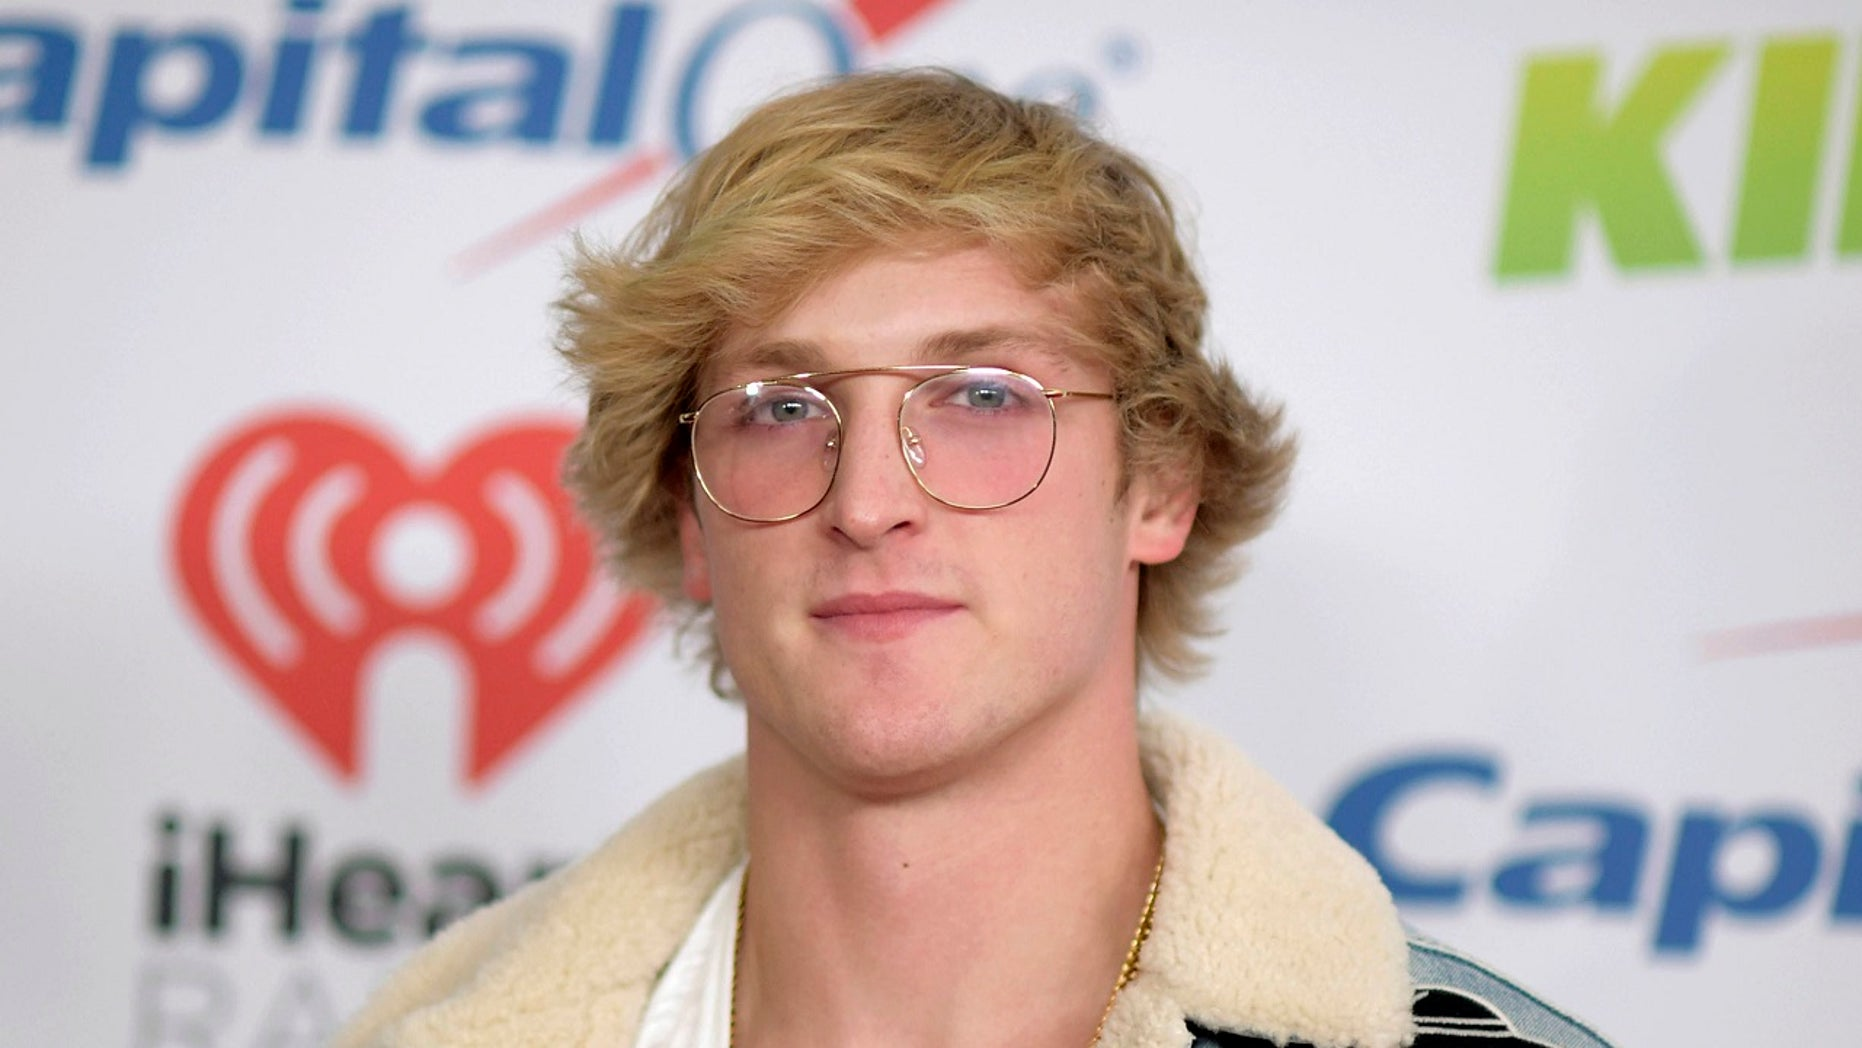 YouTube star Logan Paul is under scrutiny yet again for a video posted to his channel this week showing him using a stun gun on dead rats.